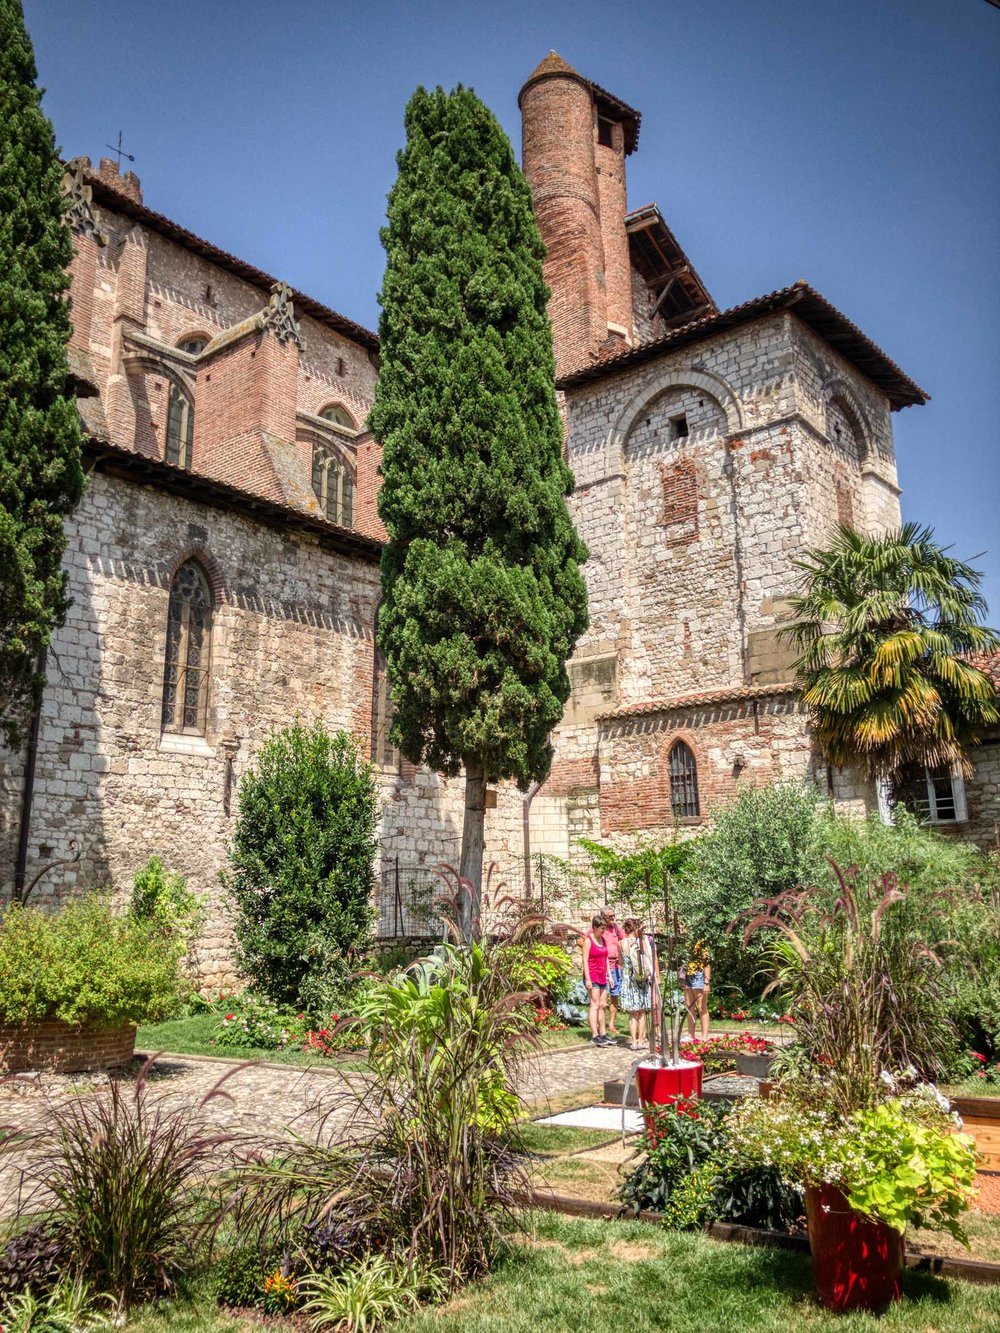 Garden at Collégiale Saint-Salvi, Albi